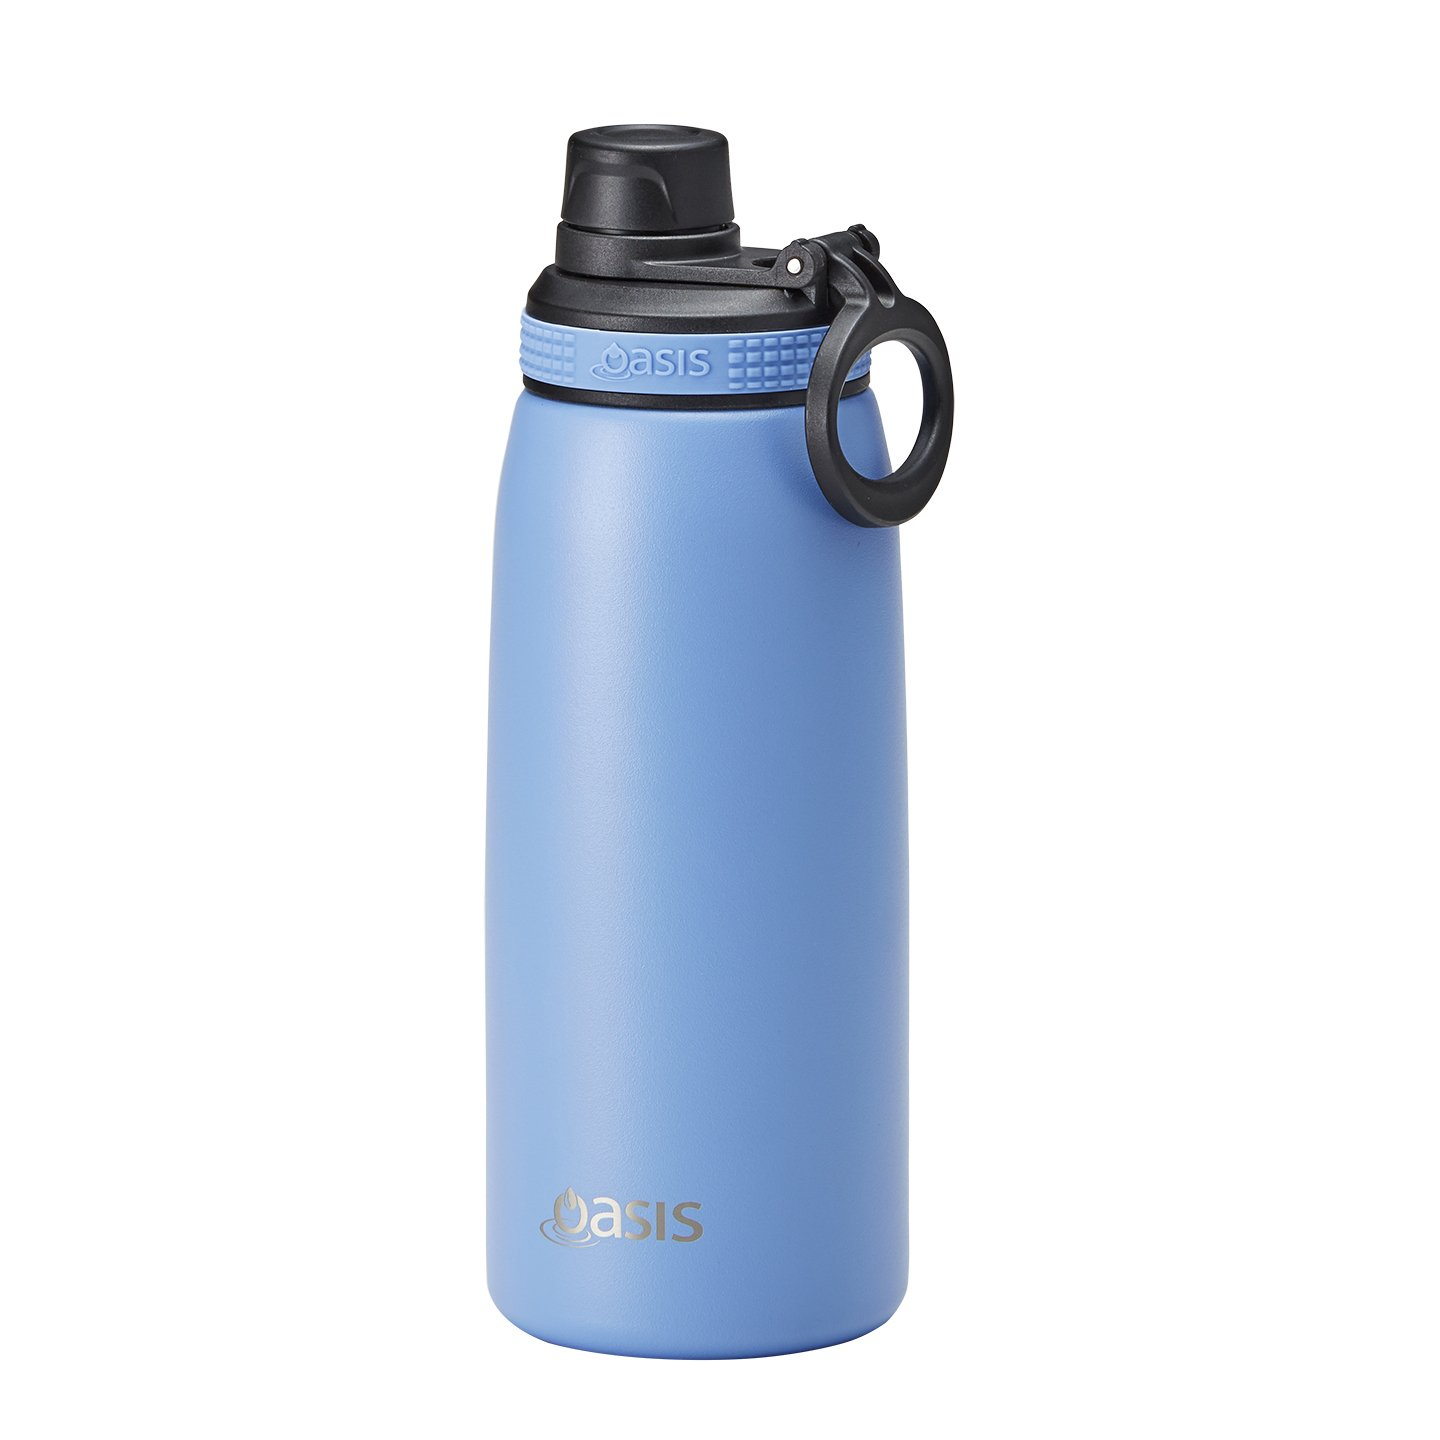 Oasis Lilac Oasis Stainless Steel Sports Bottle